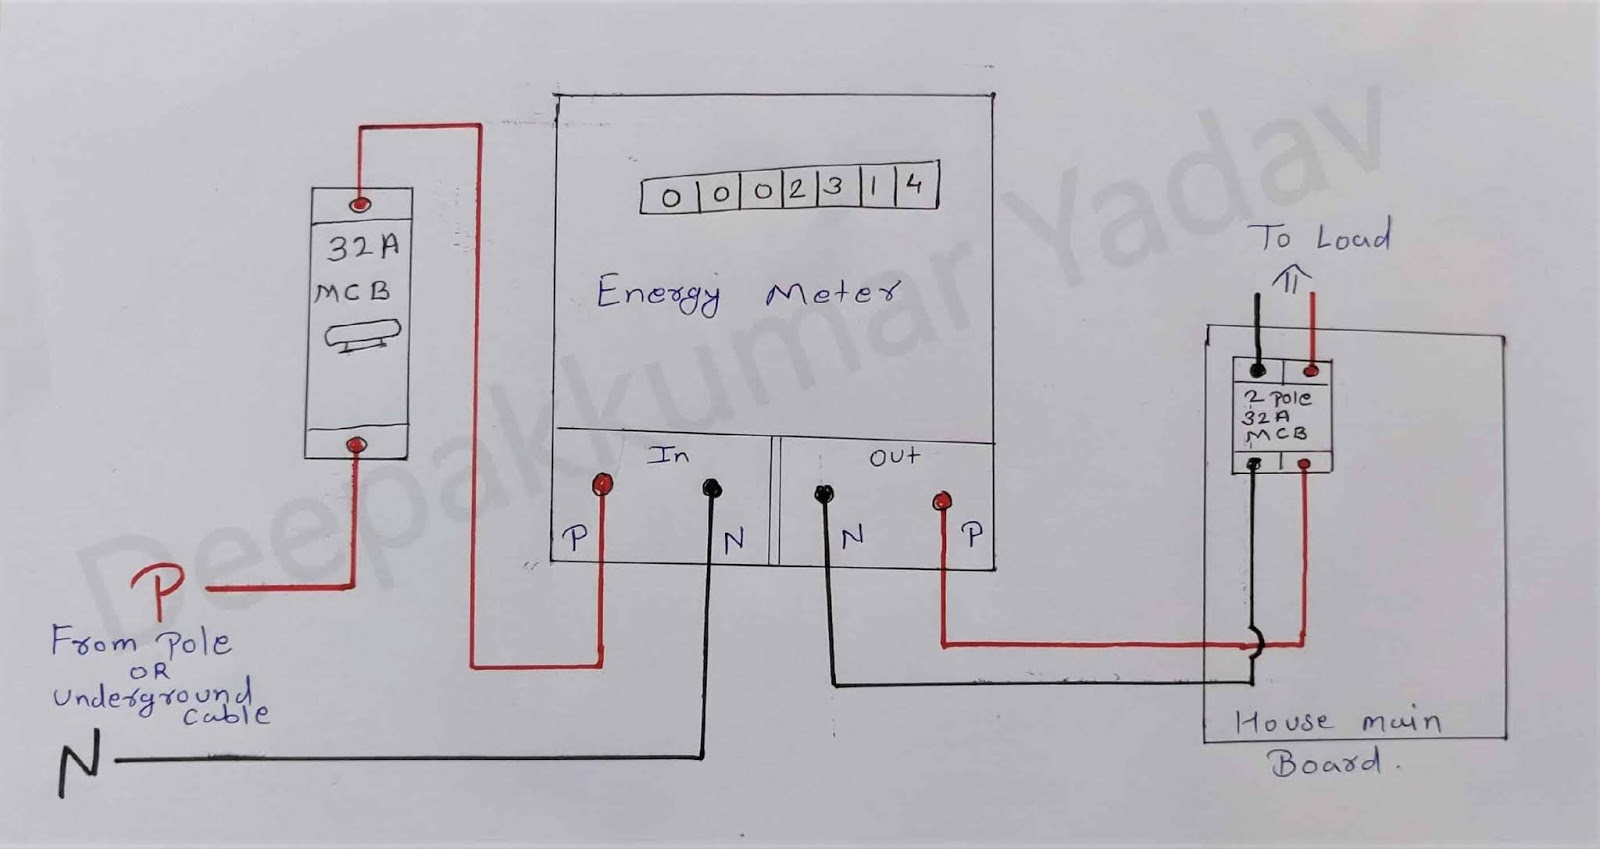 Electricity meter, Meter Wiring Connection, बिजली ... on motor connection, software connection, alternator connection, suspension connection, plumbing connection, cable connection, appliances connection, 3-way connection, audio connection, service connection, wood connection, maintenance connection, blue connection,